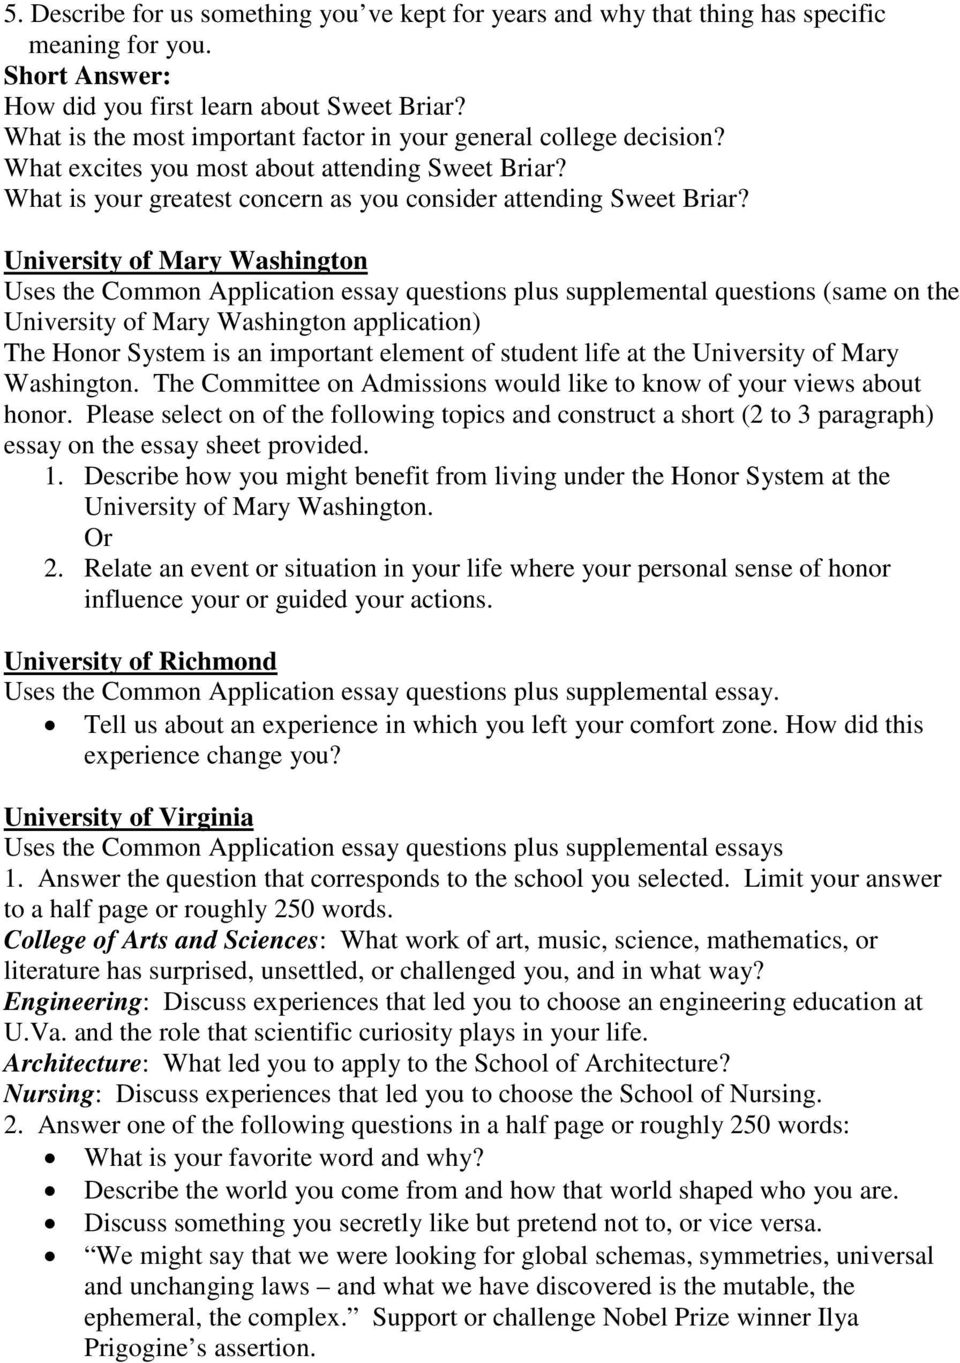 University of Mary Washington Uses the Common Application essay questions plus supplemental questions (same on the University of Mary Washington application) The Honor System is an important element